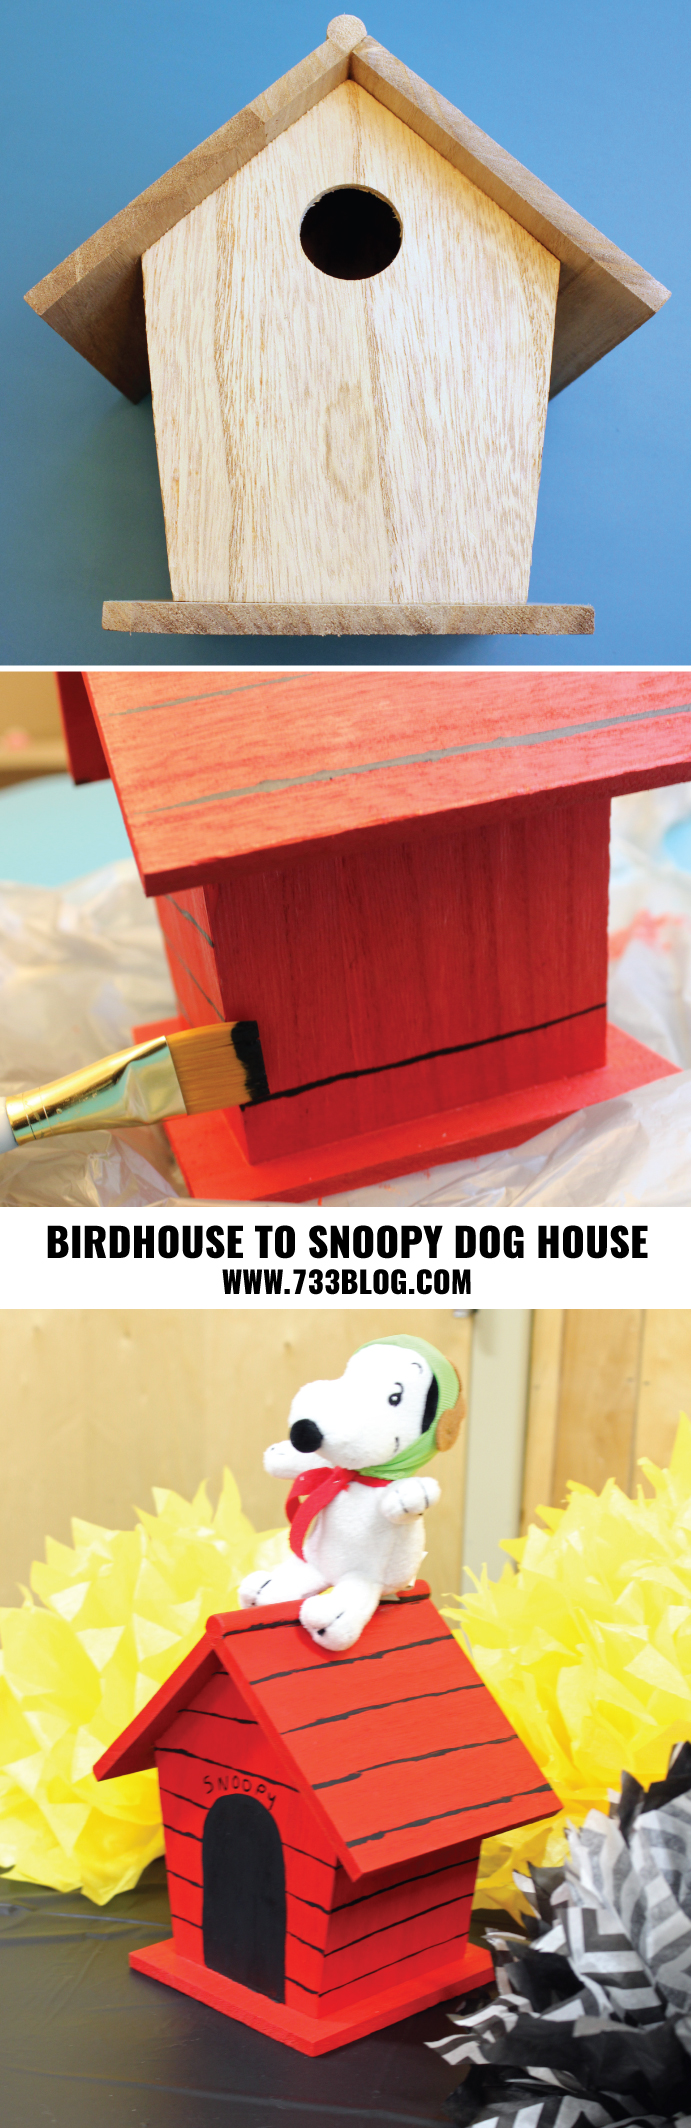 DIY Snoopy Dog House